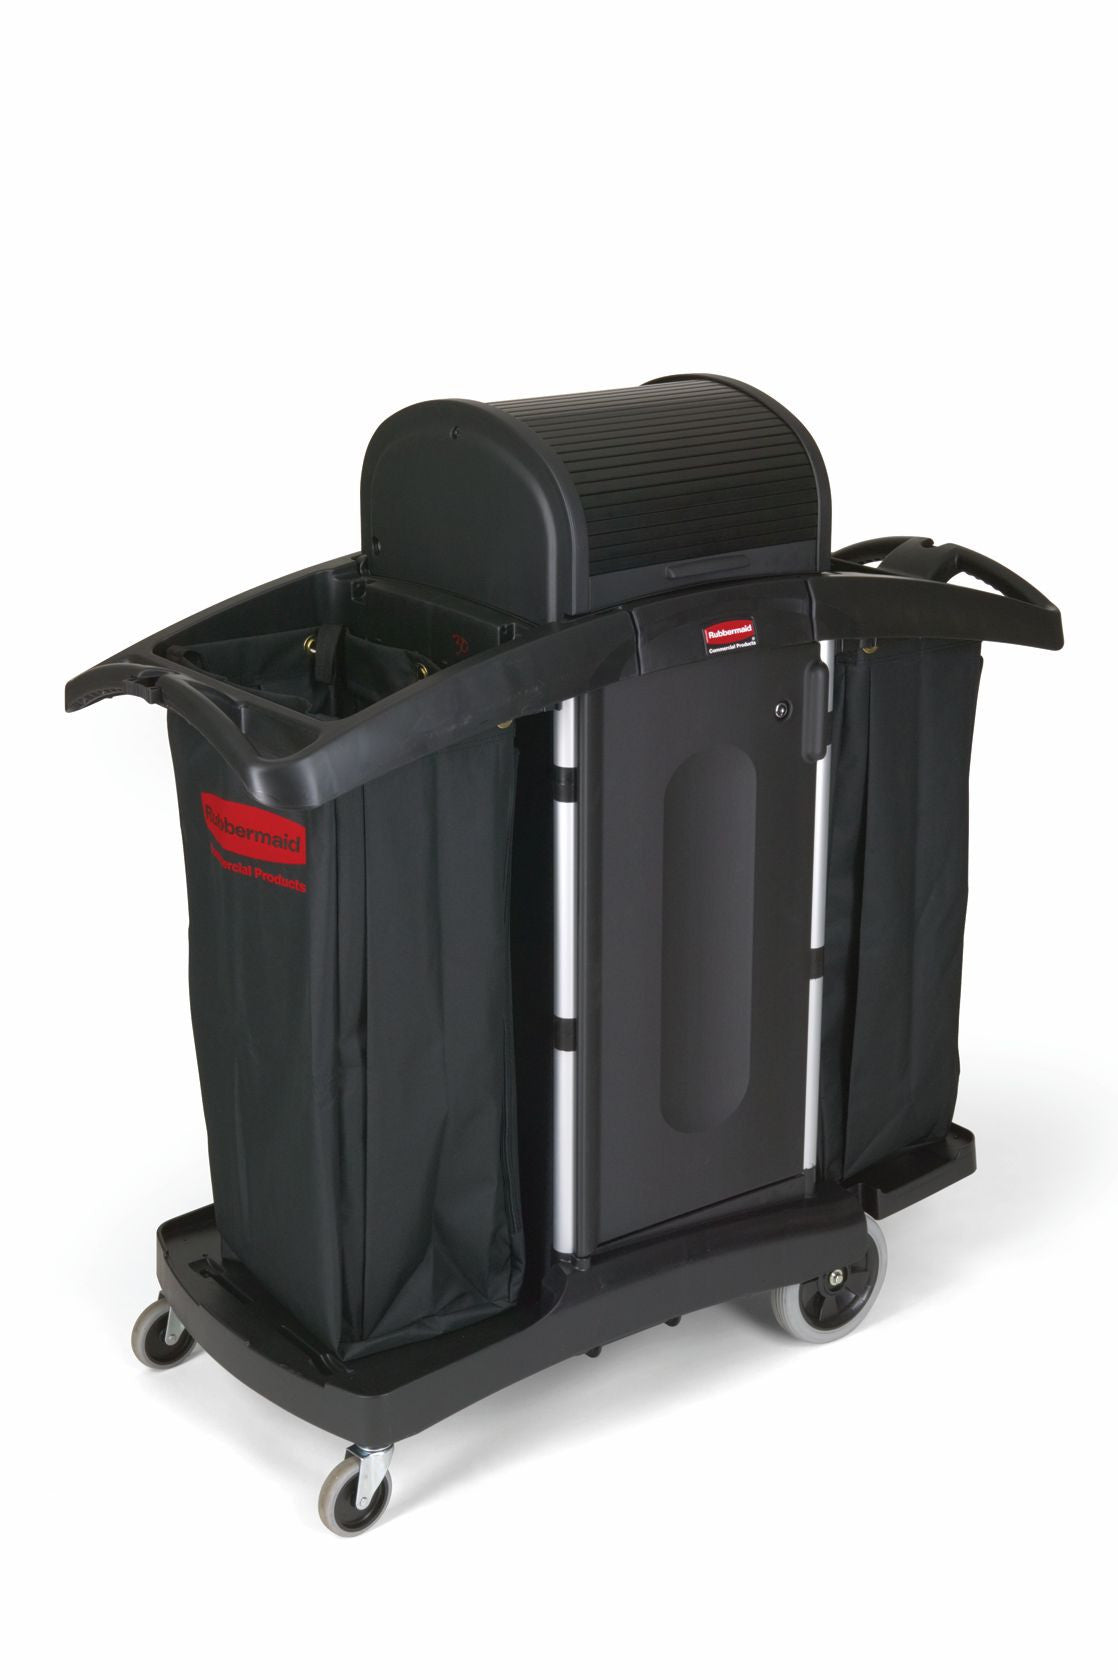 HIGH SECURITY HOUSEKEEPING CART